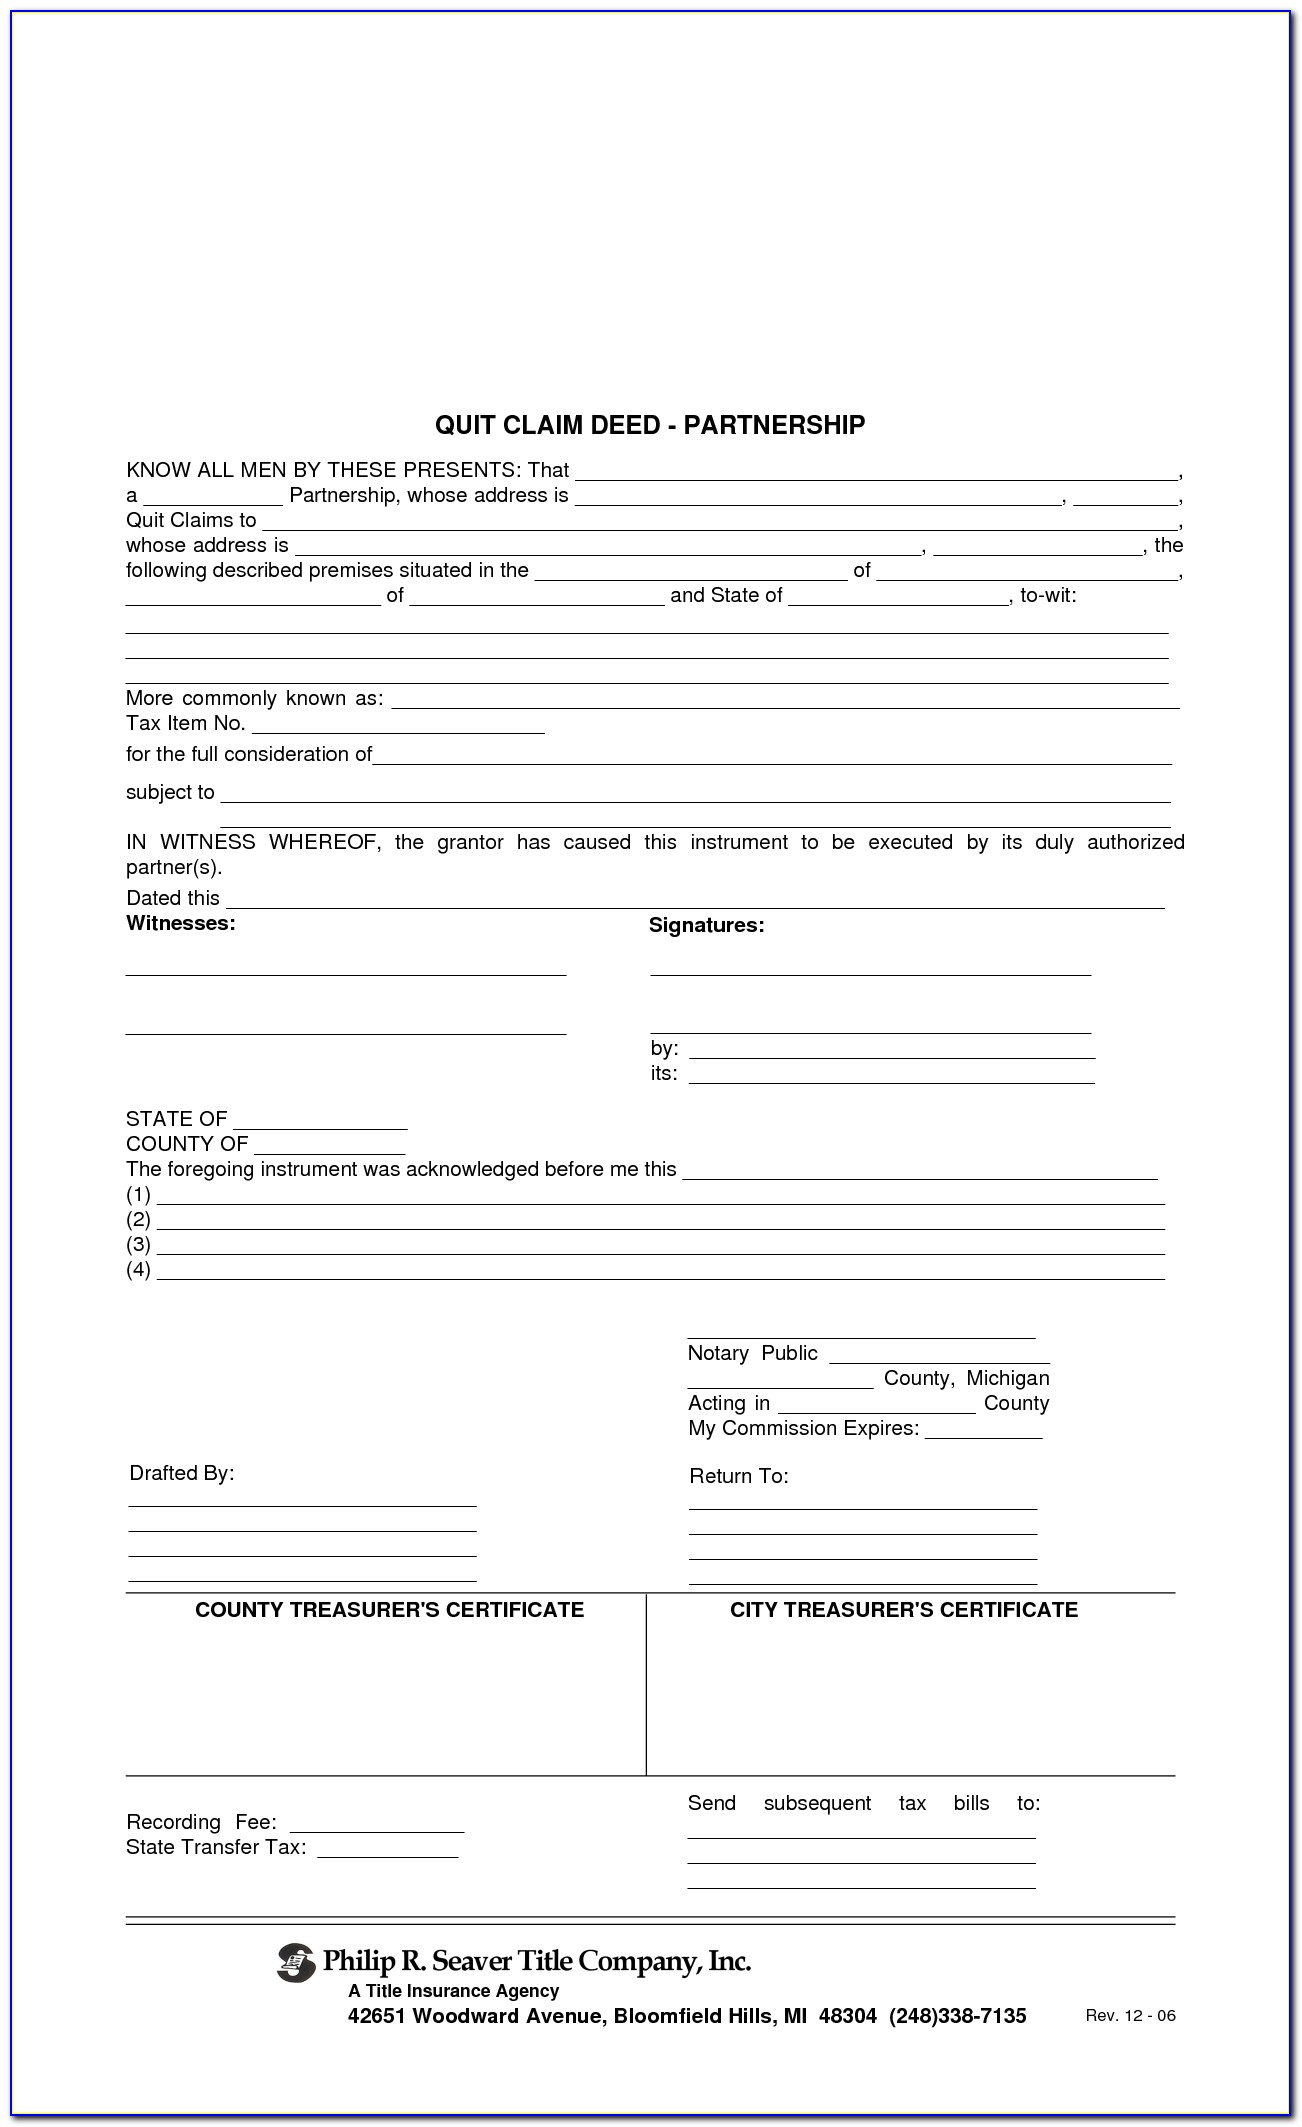 Blank Quit Claim Deed Form Wayne County Michigan